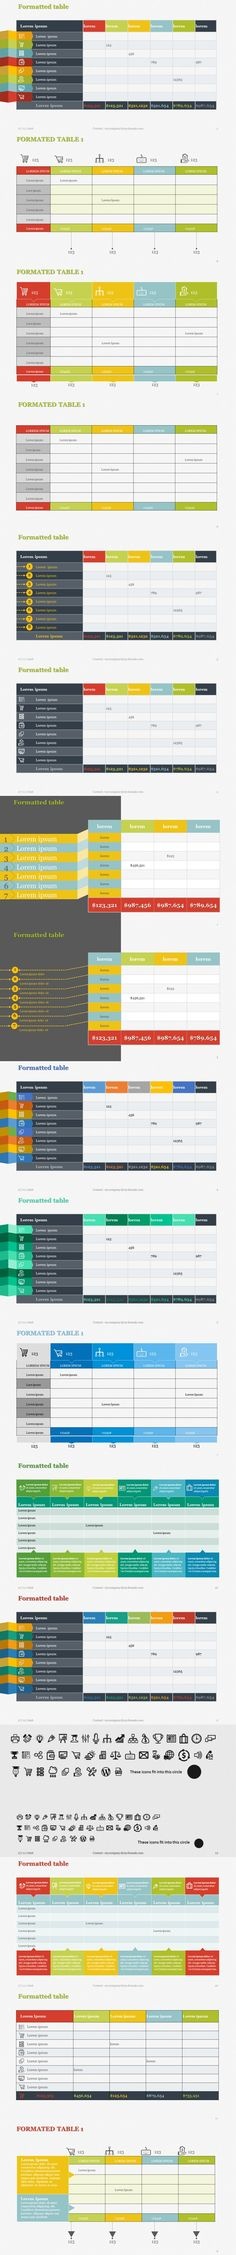 Creative Tables Pack 1 PowerPoint. Presentation Templates. $9.00